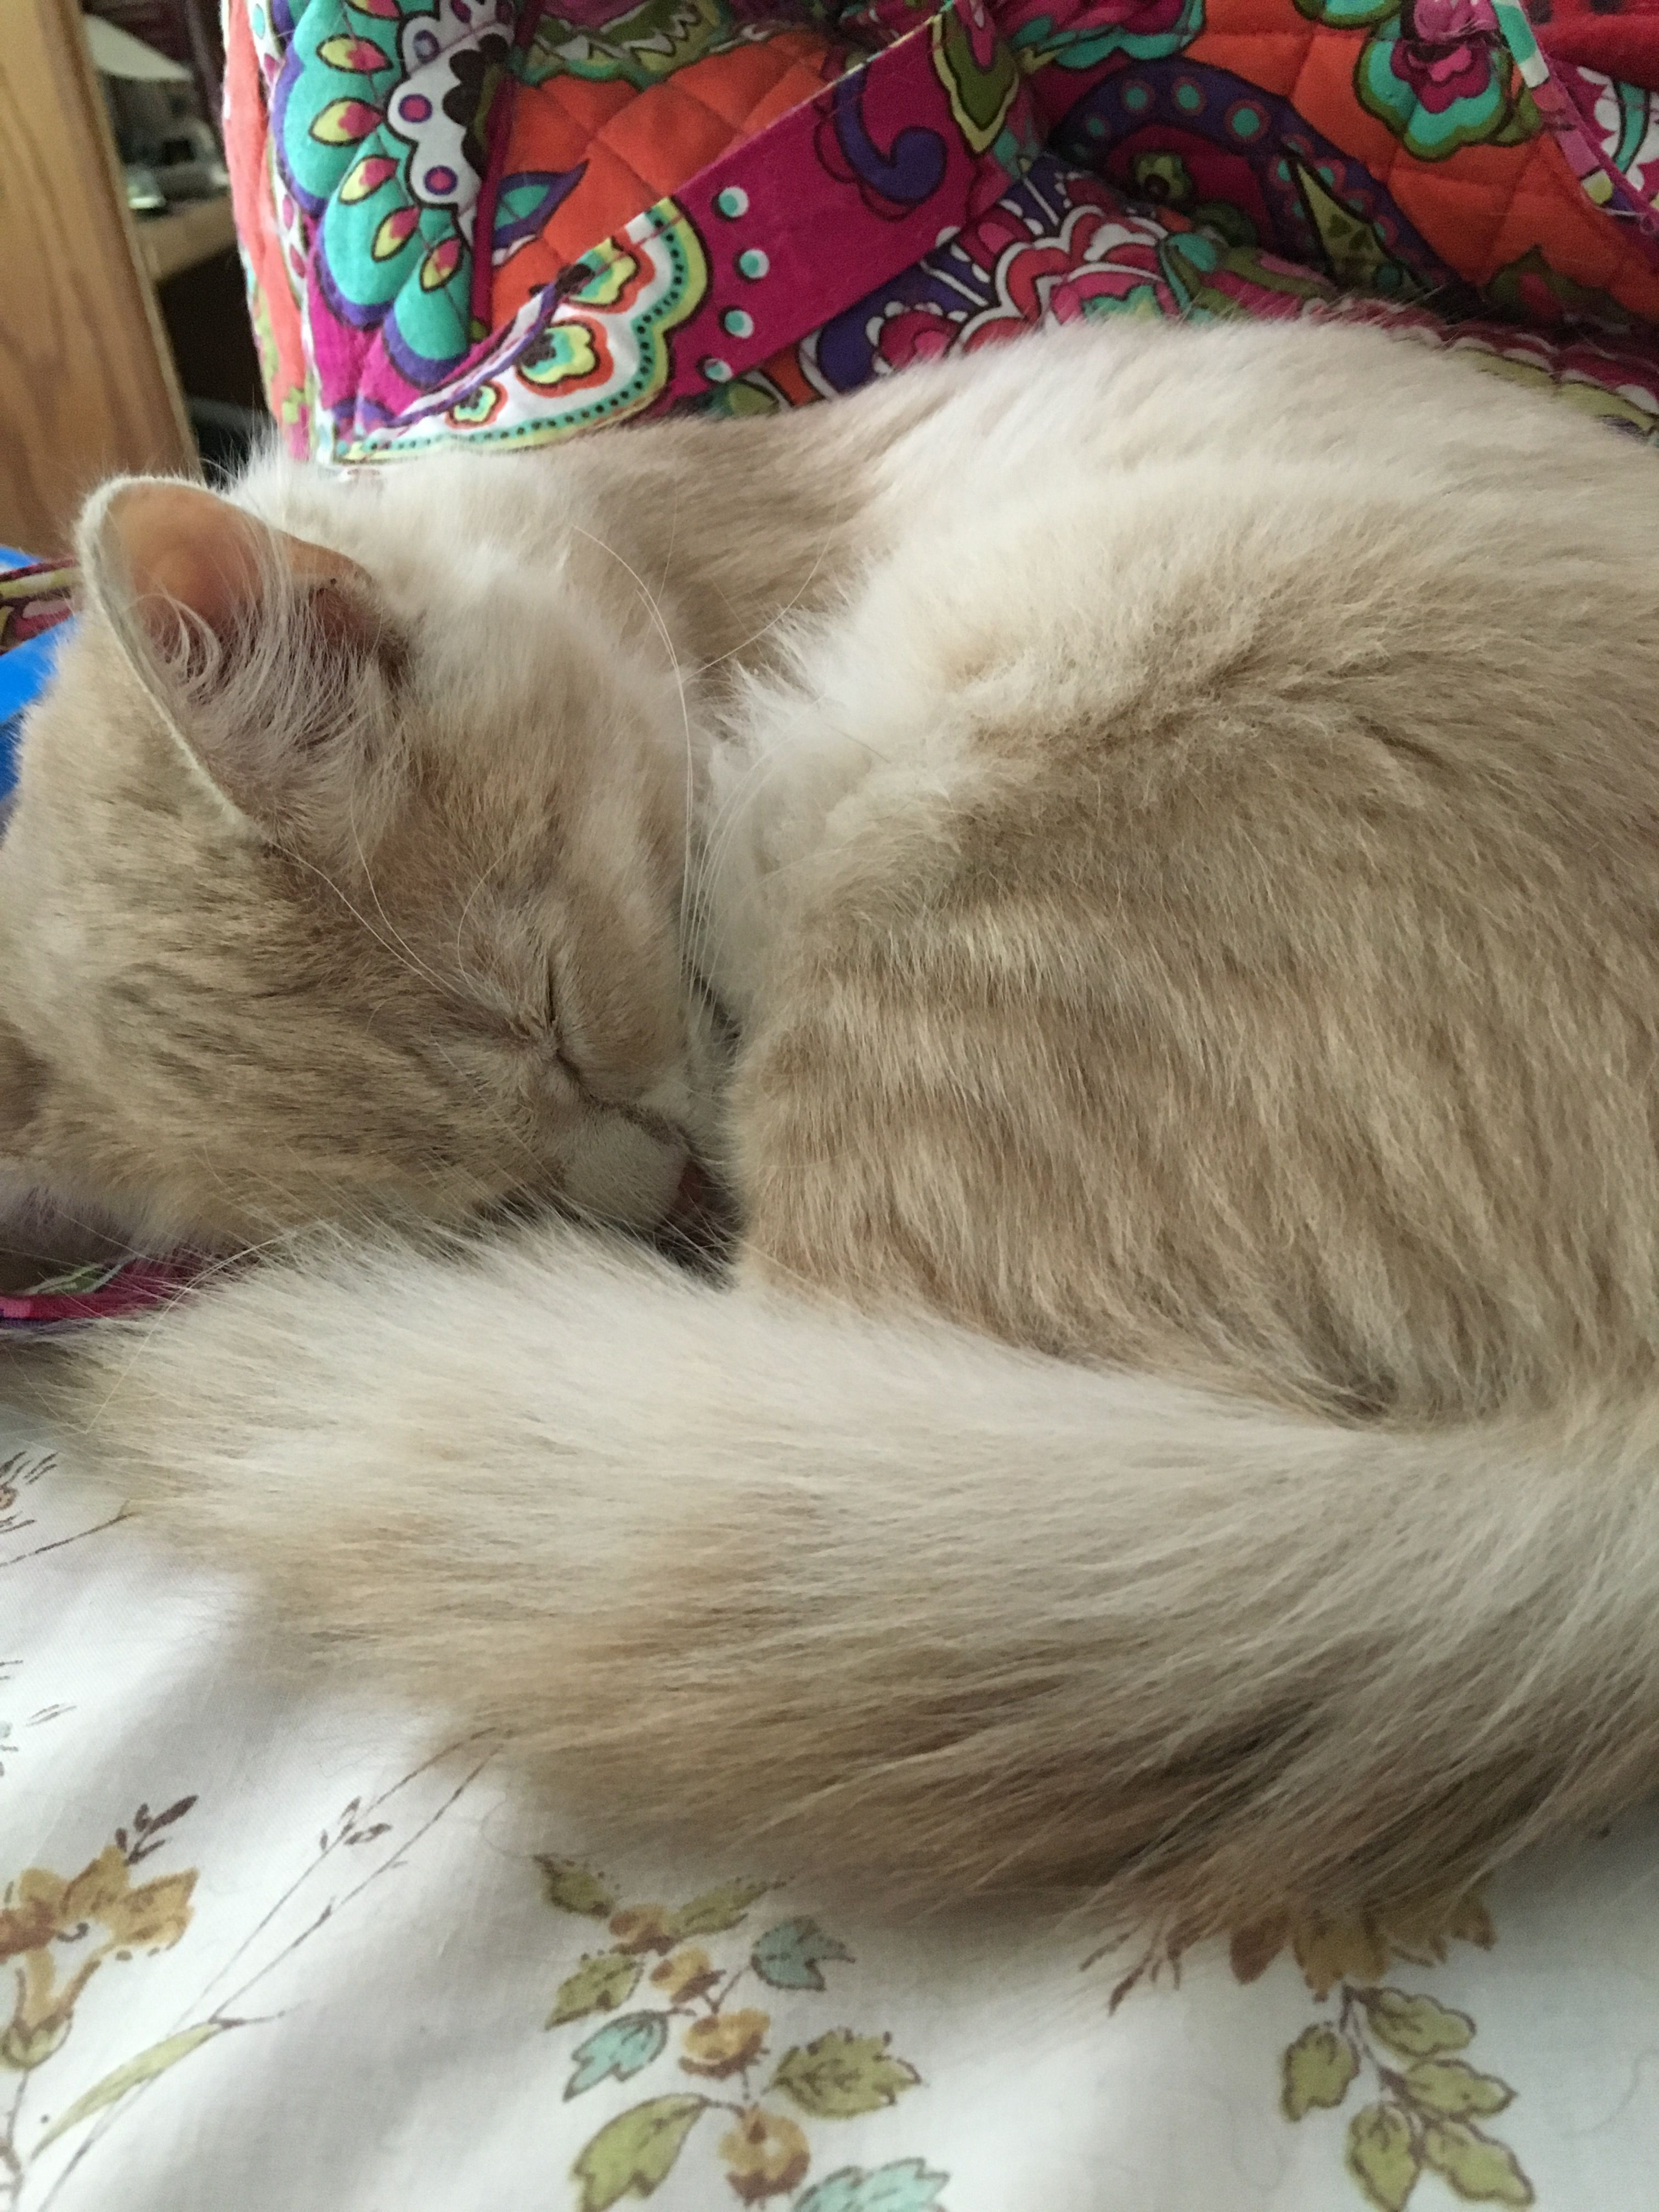 Portia Is A Fluffy Kitten Looking For A Forever Home Who Will Promise To Brush Her Fluffy Kittens Cat Adoption Cats